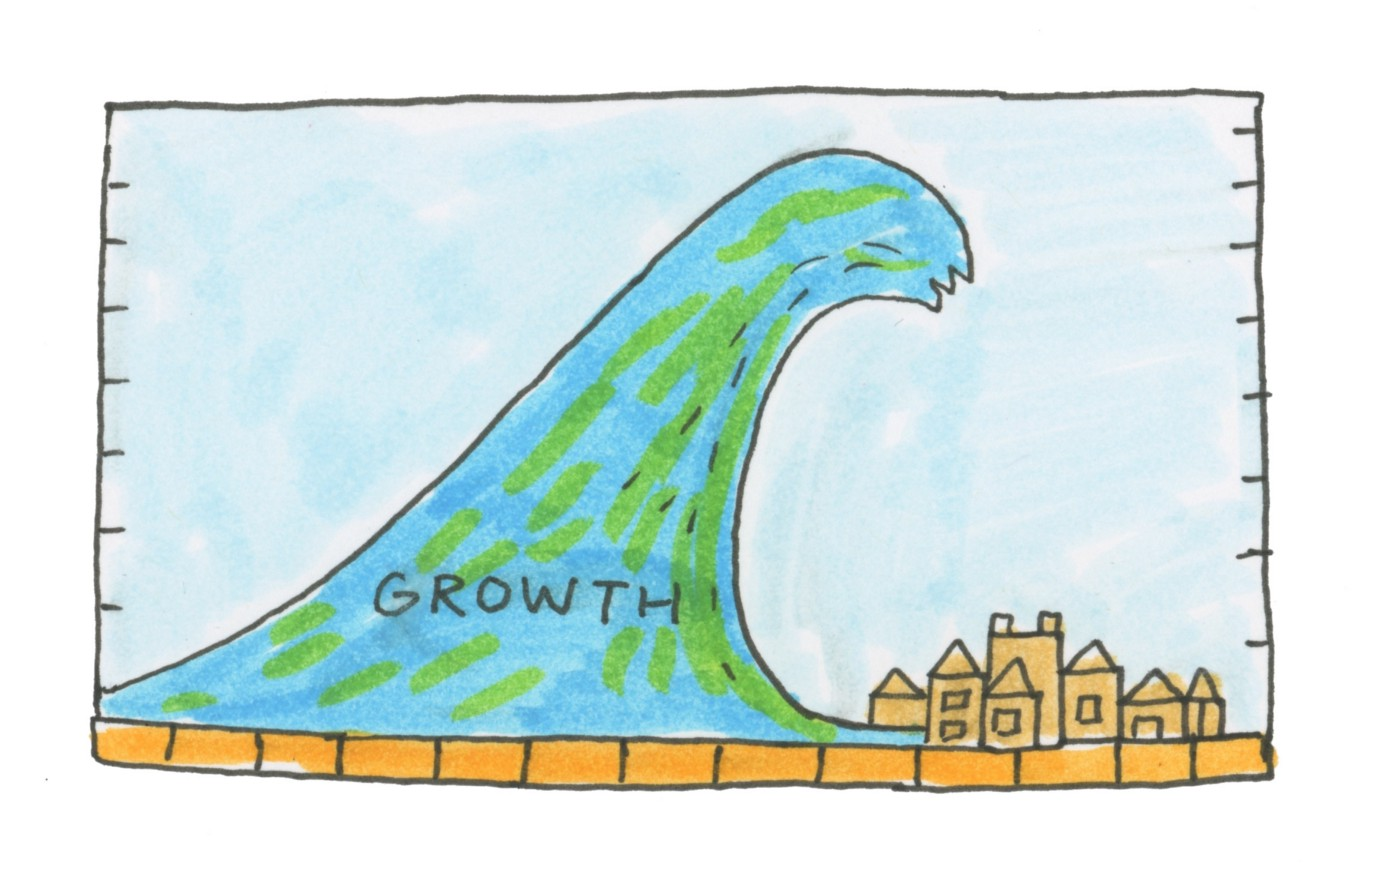 Growth tsunami